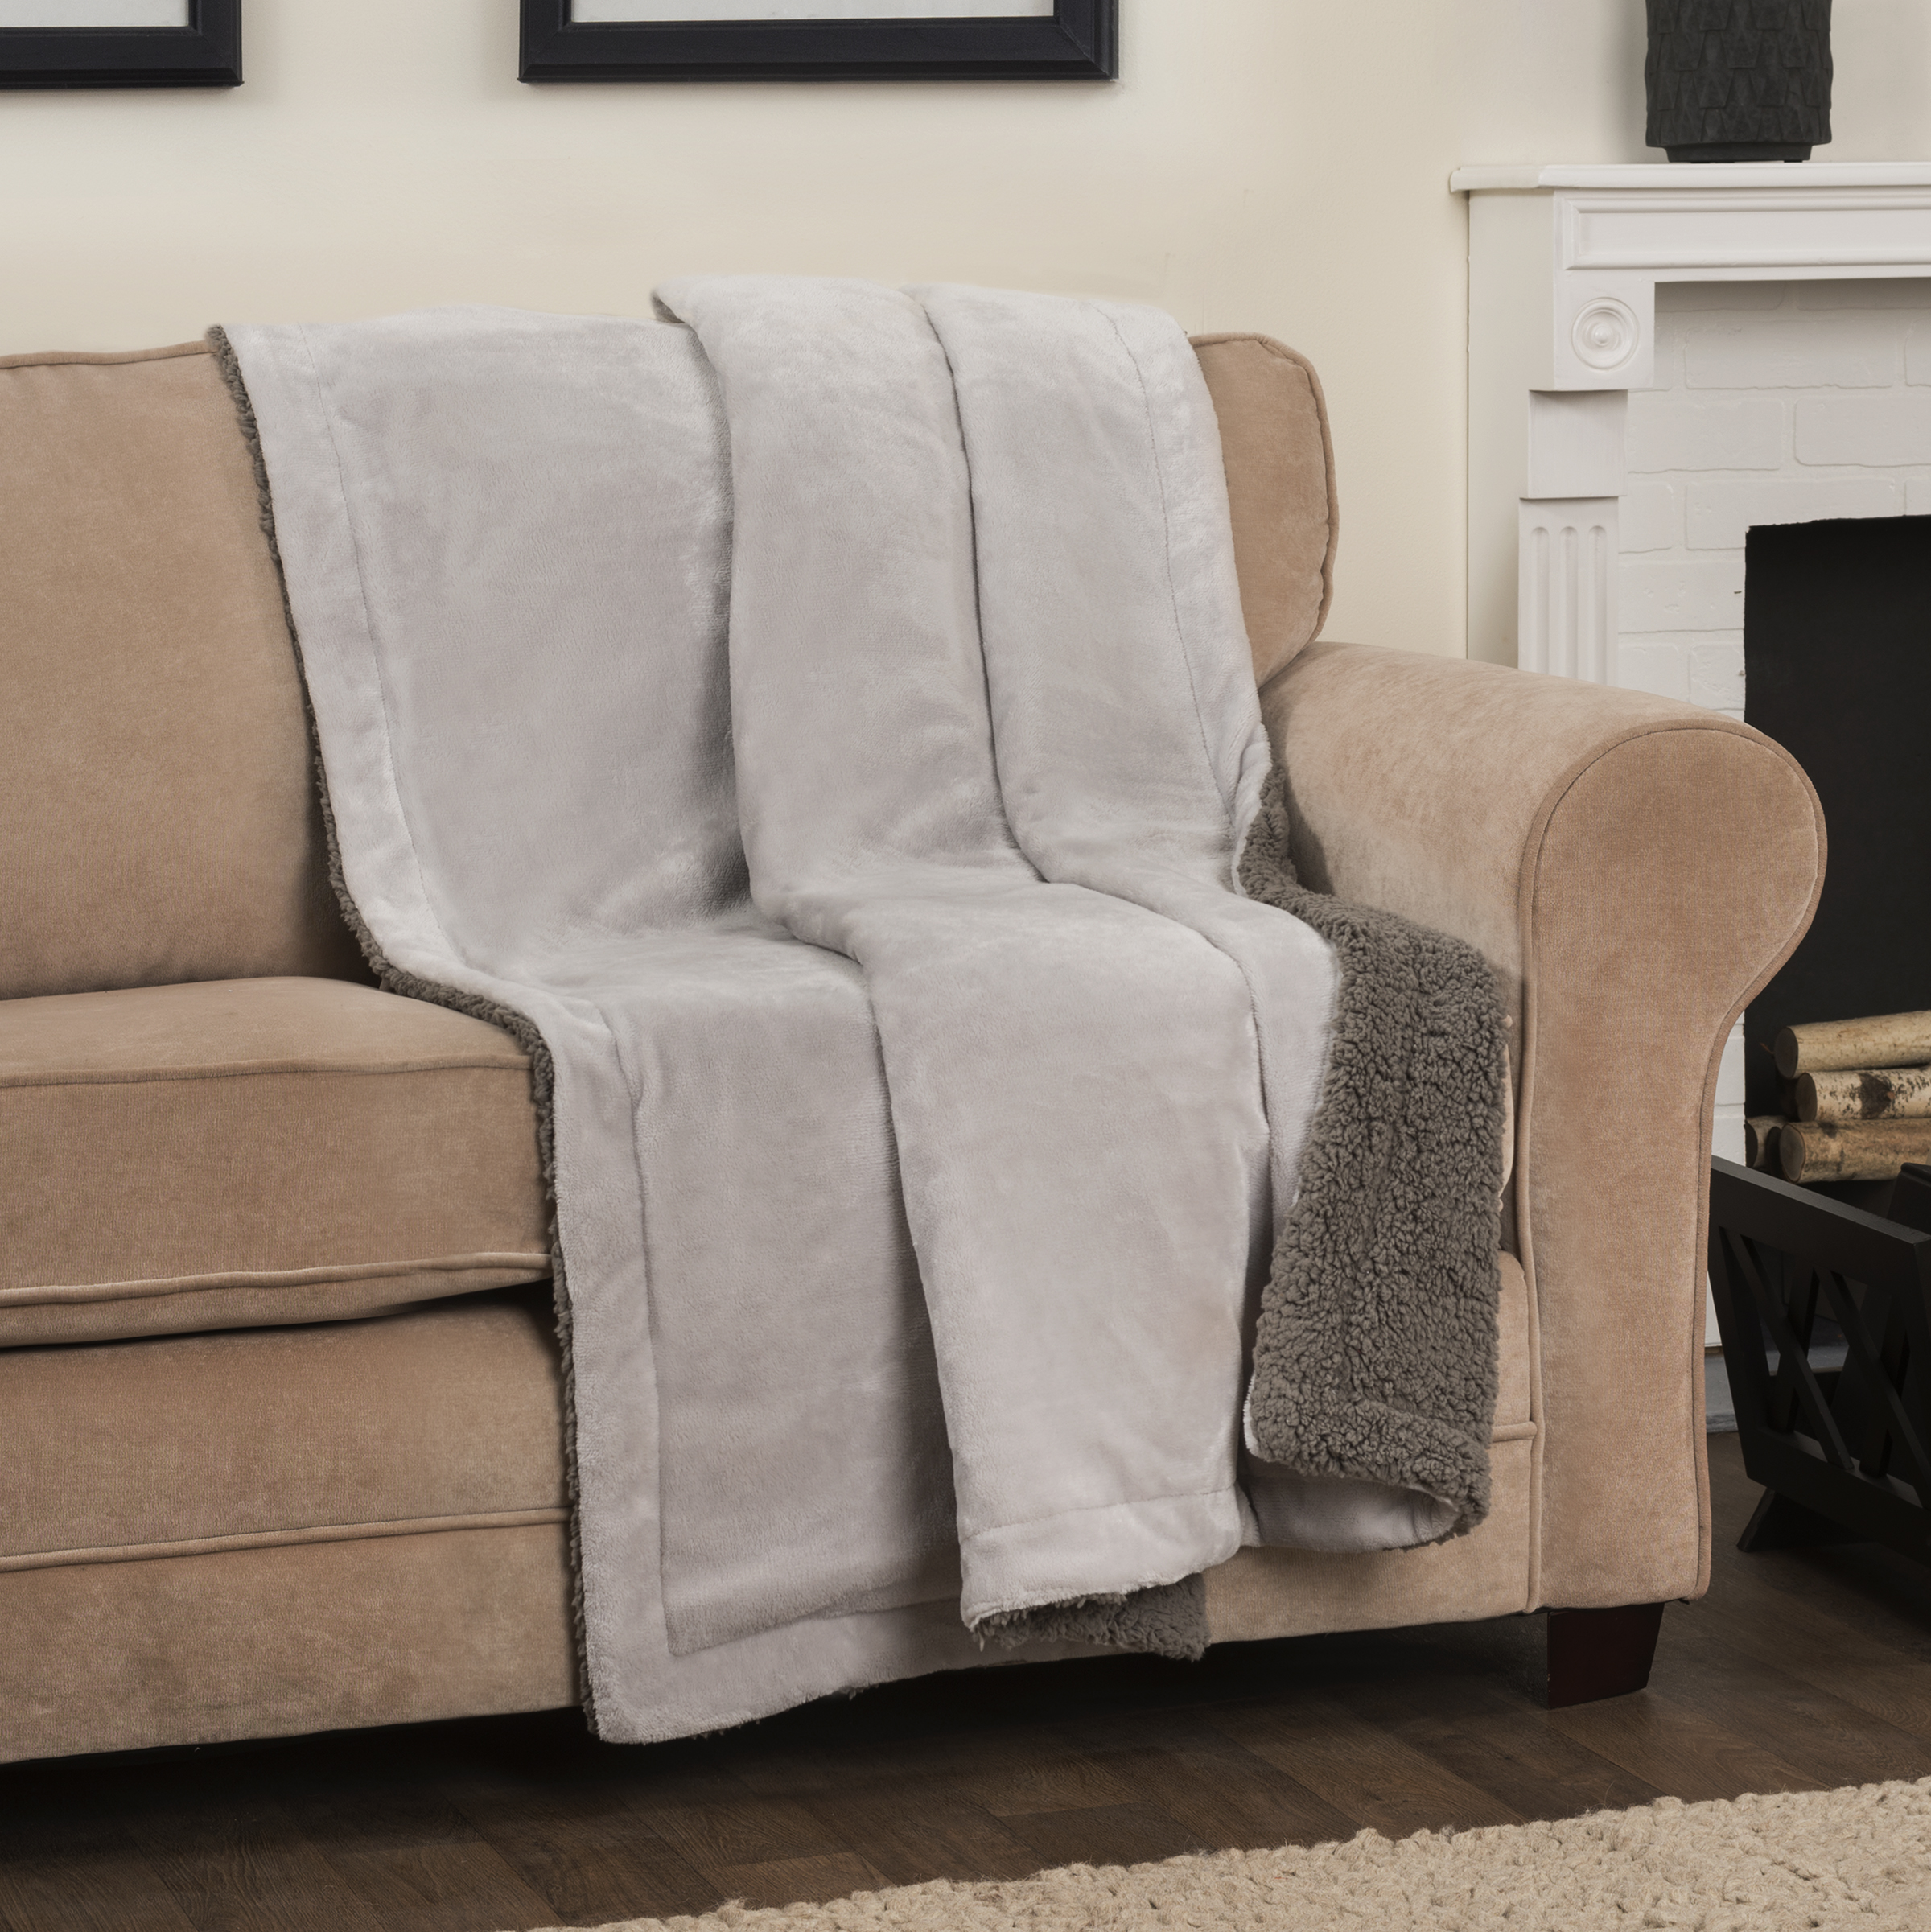 Arlee Self Warming Heating Throw Blanket - Reversible Sherpa Fleece for Bed or Couch or Chair or Travel Bennet Silver